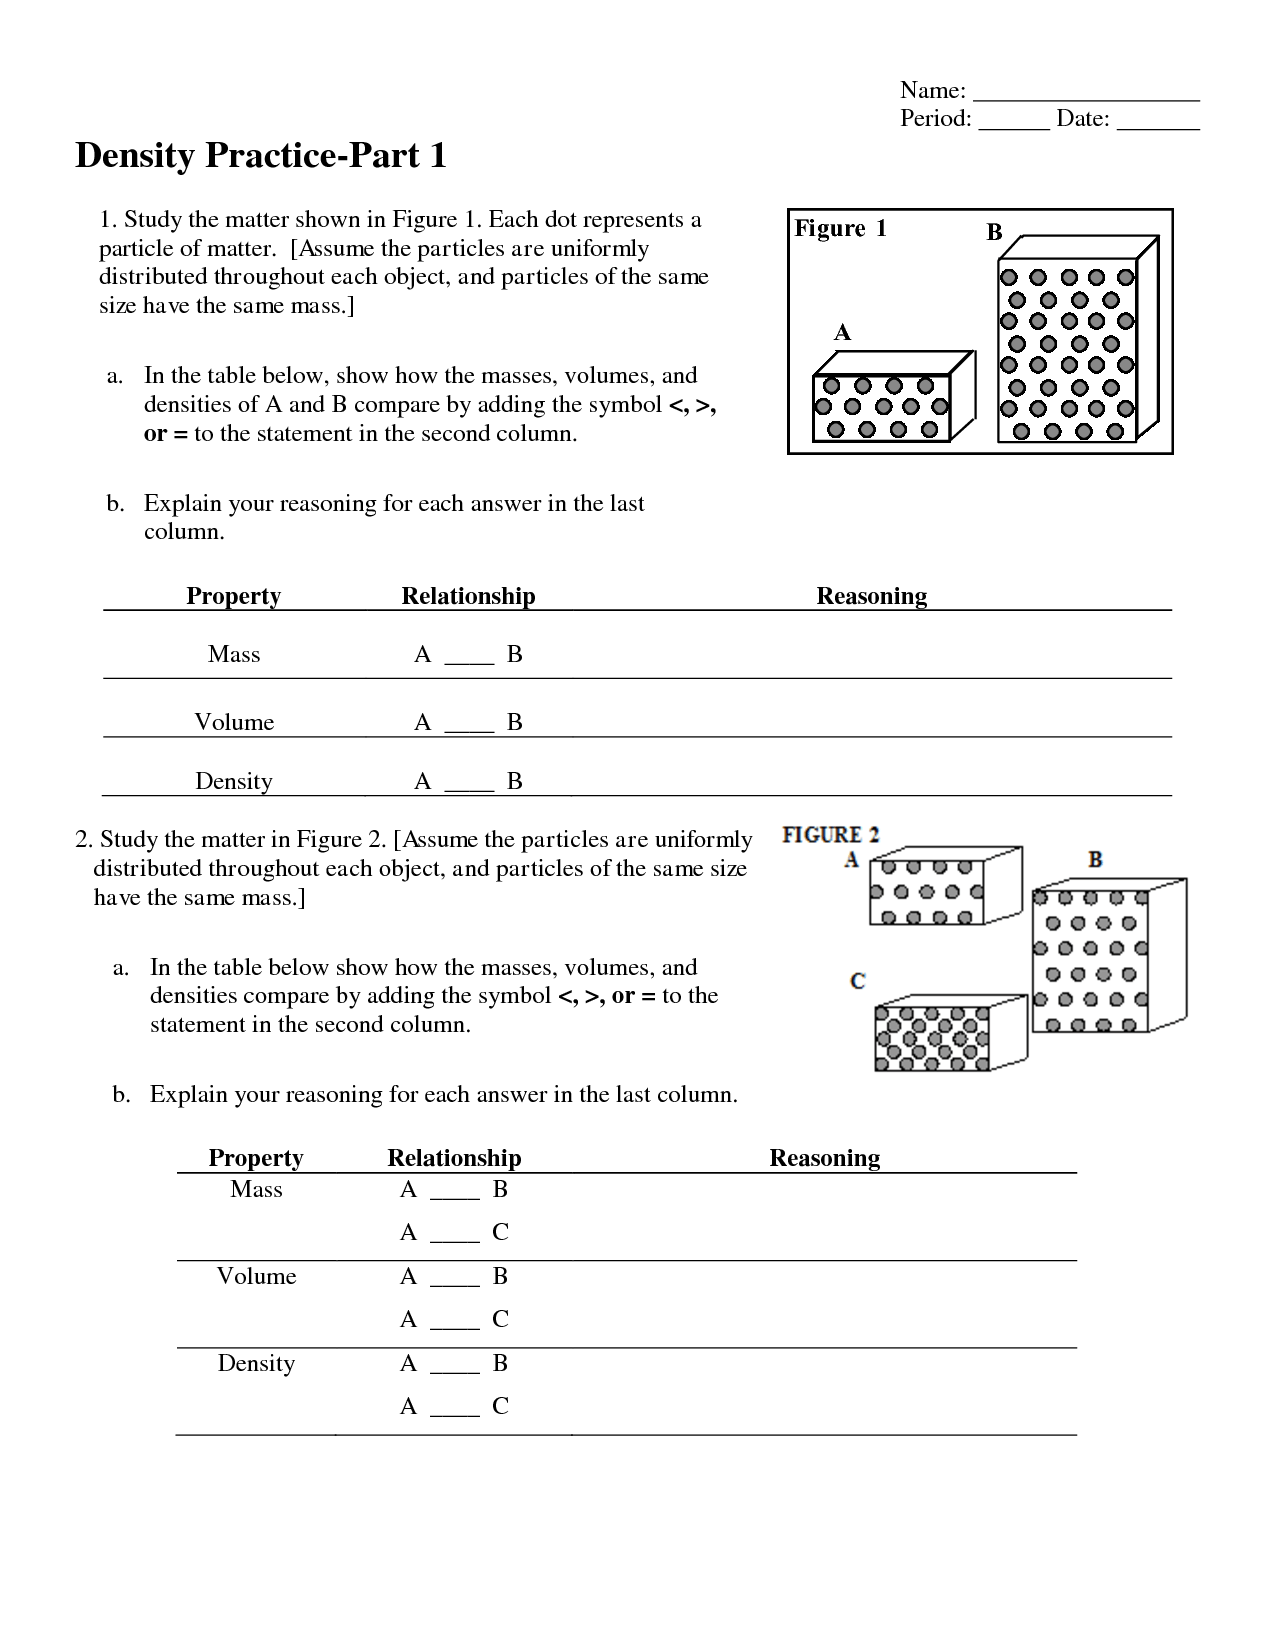 Density Worksheet 1 Answers